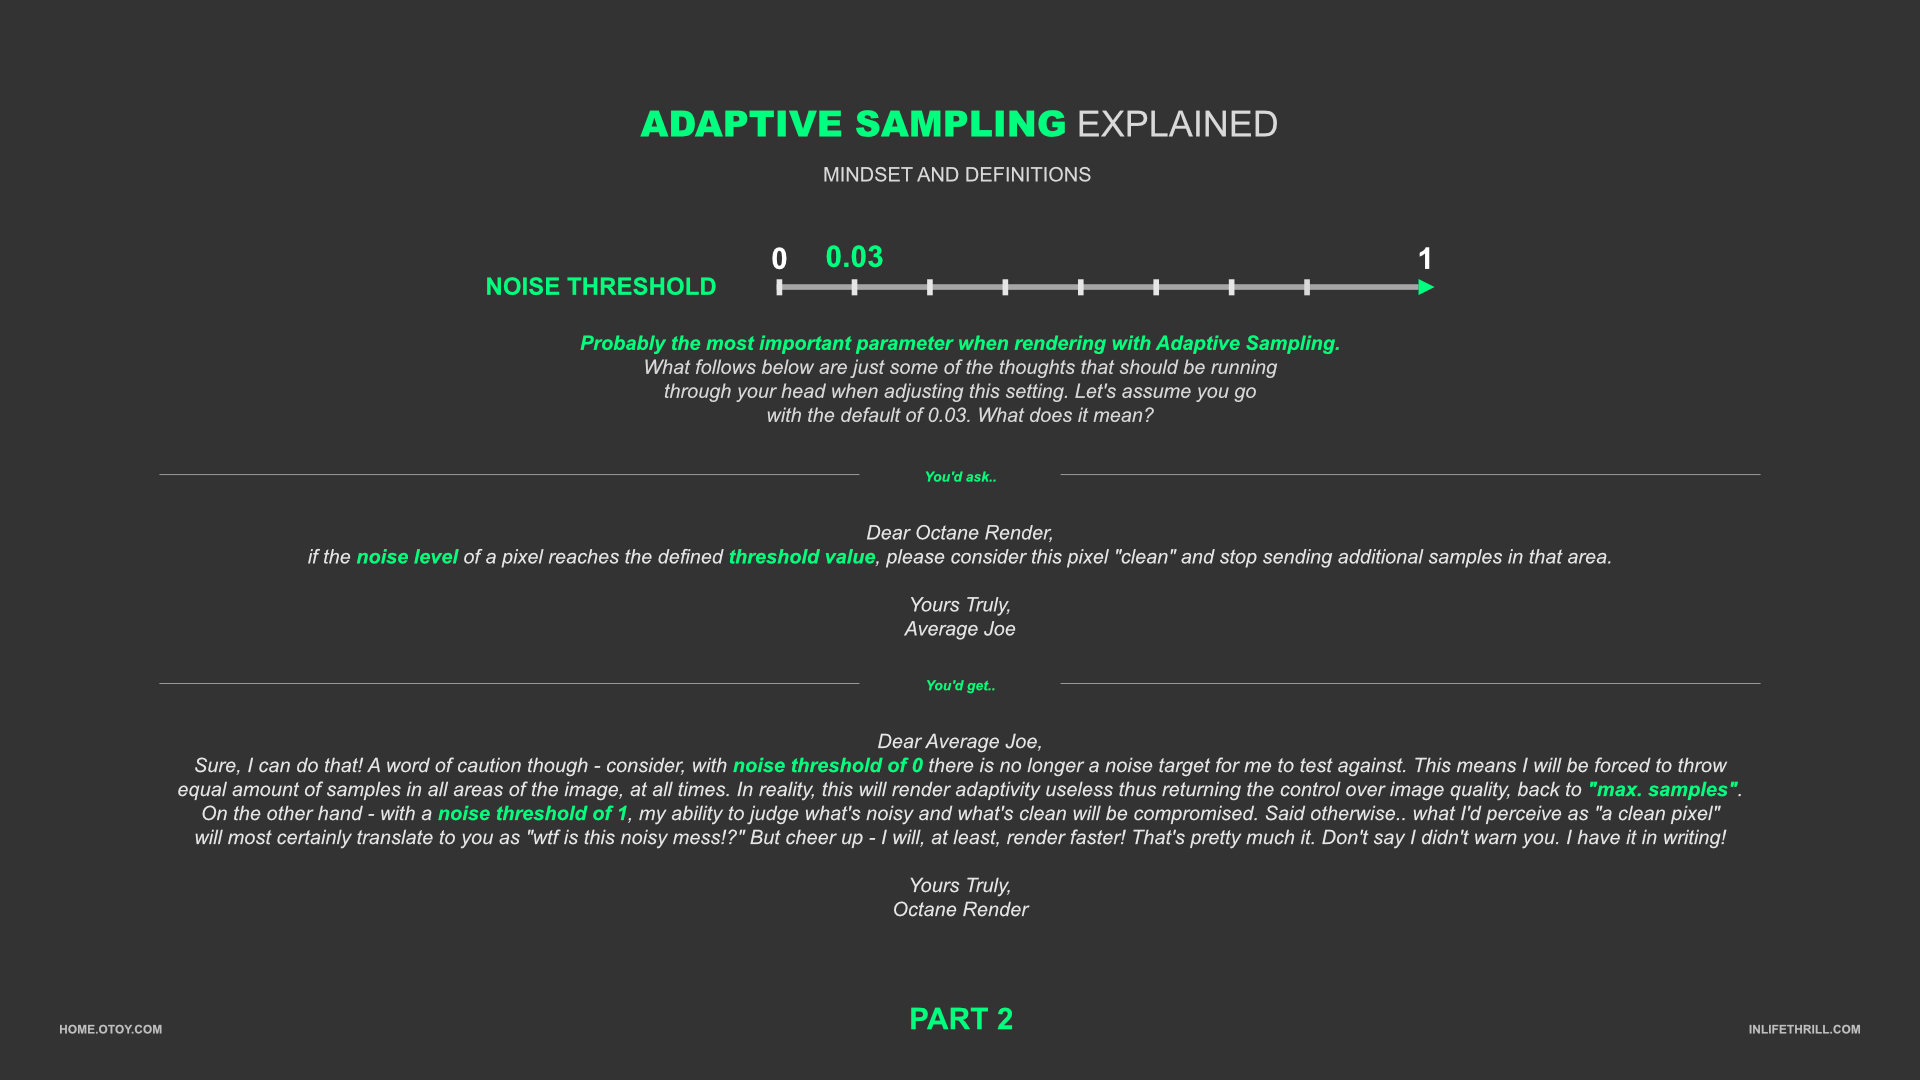 Adaptive Sampling Explained #2